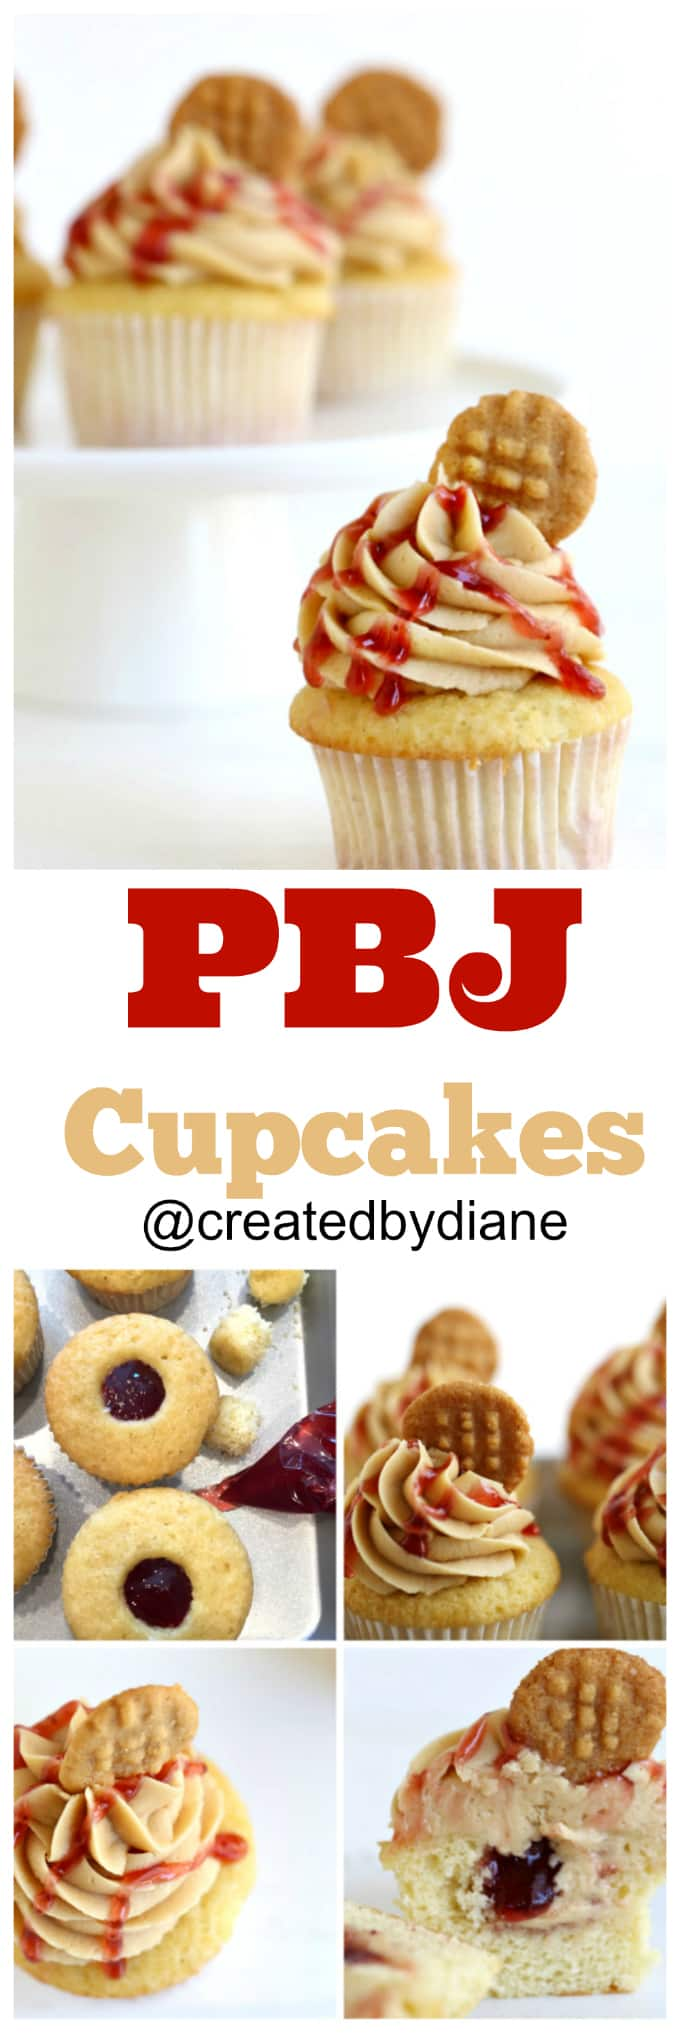 pbj-cupcakes-recips-fantastically-delicious-and-great-for-peanut-butter-lovers-everywhere-peanut-butter-cupcakes-strawberry-jam-jelly-peanut-butter-frosting-createdbydiane